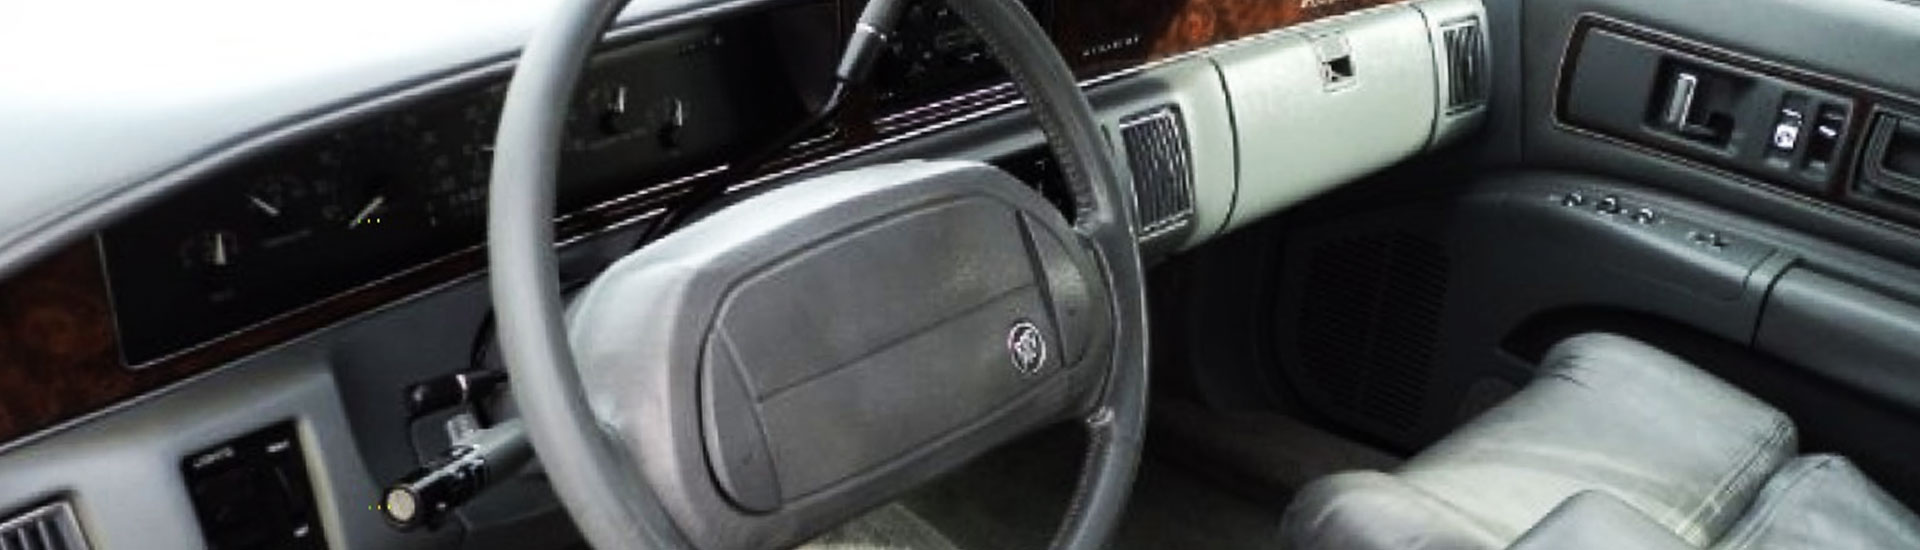 Buick Roadmaster Dash Kits